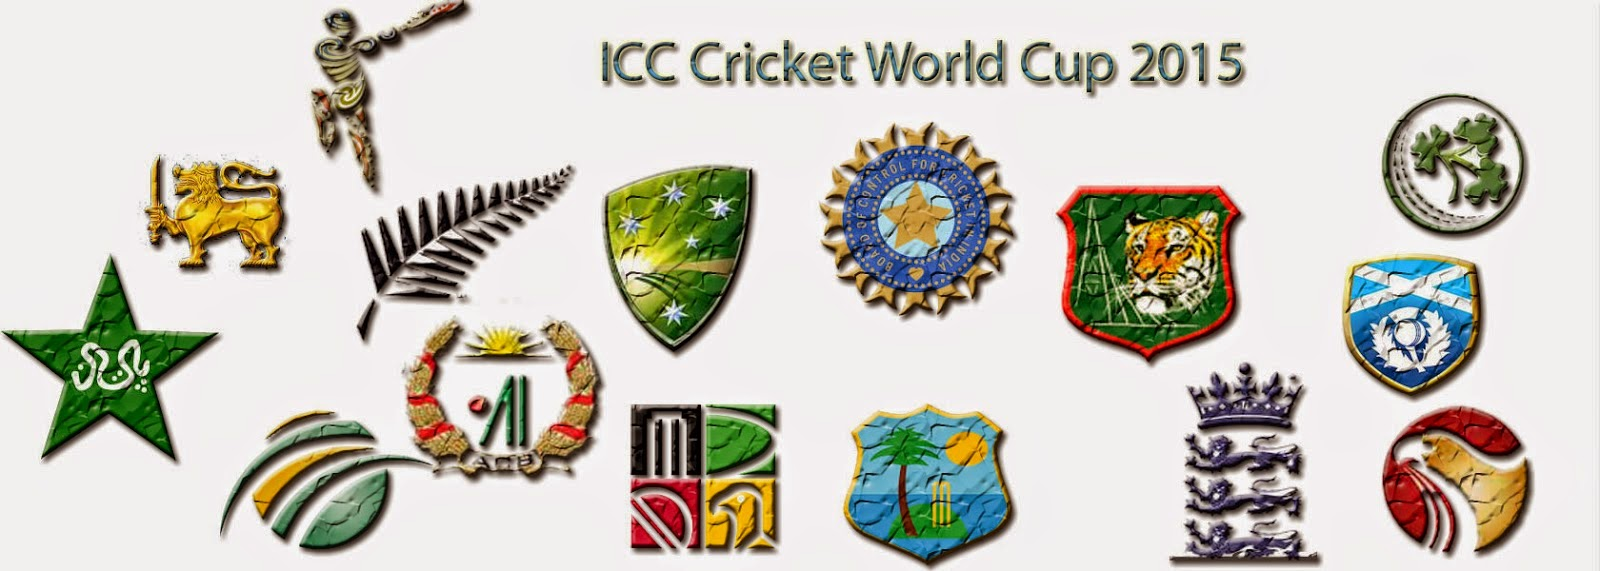 ICC Cricket World Cup 2015 Afghanistan 15 member Team Squad